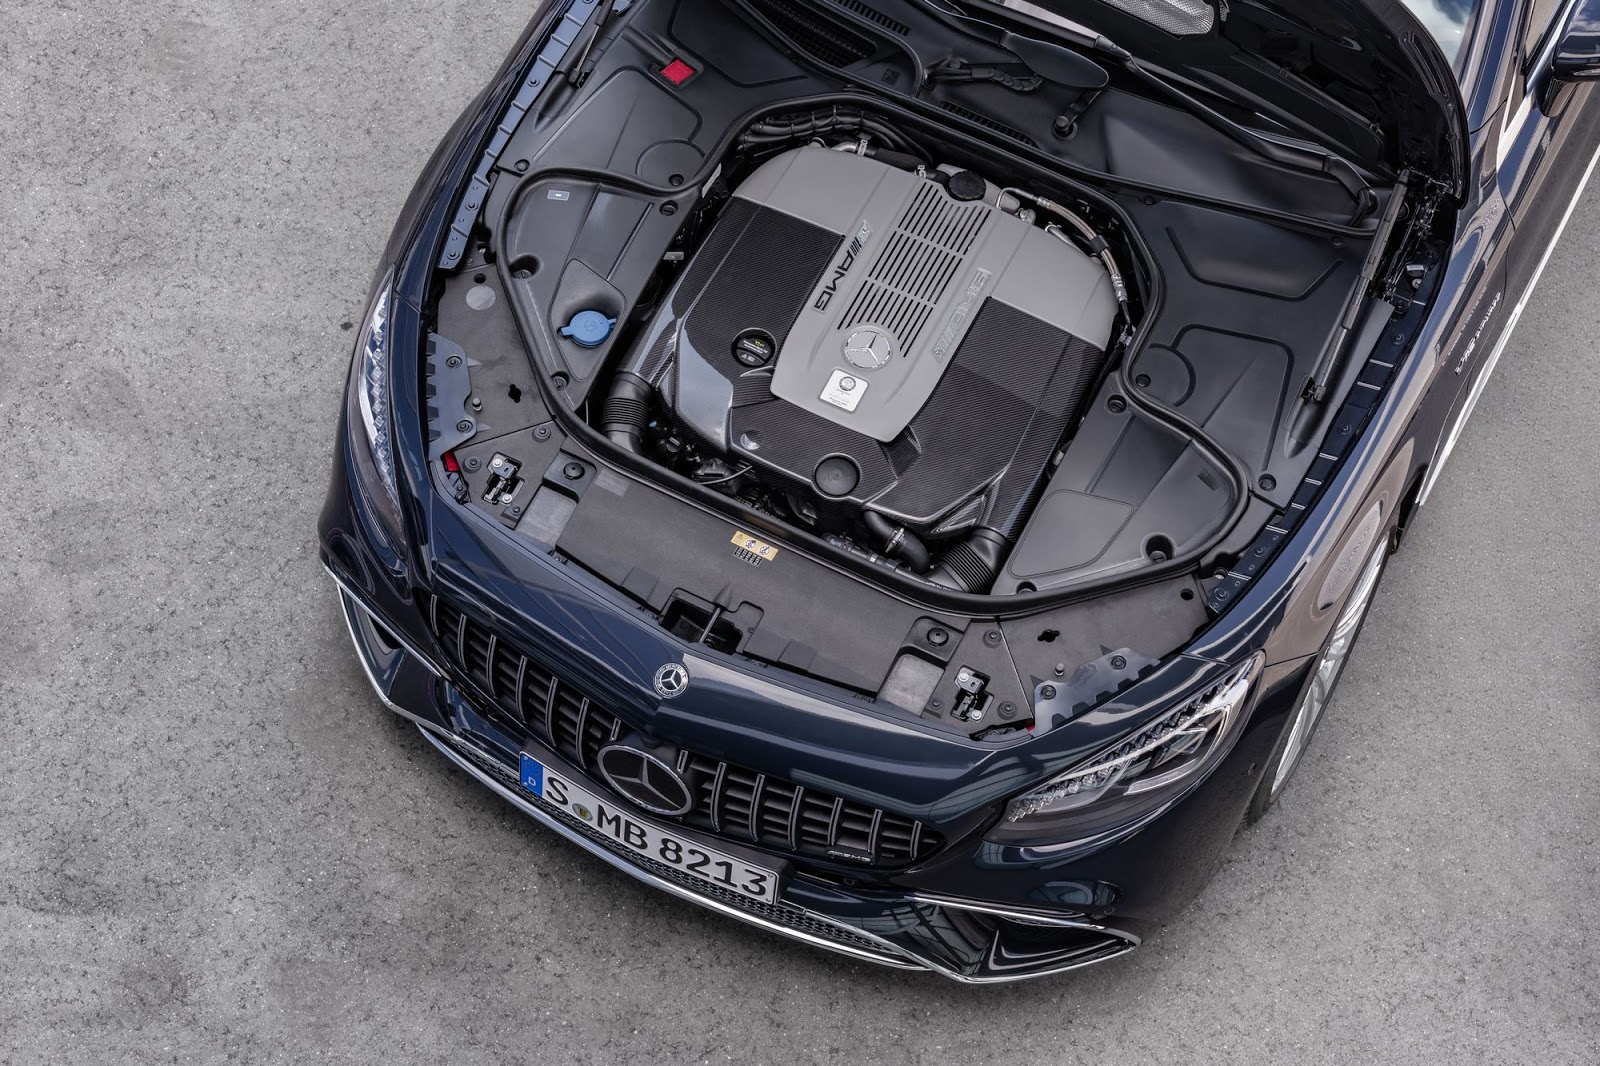 Mercedes-AMG S 65 Coupé, 2017. Exterieur: anthrazitblau metallic, Motor;Kraftstoffverbrauch kombiniert: 11,9 l/100 km; CO2-Emissionen kombiniert: 279 g/km*